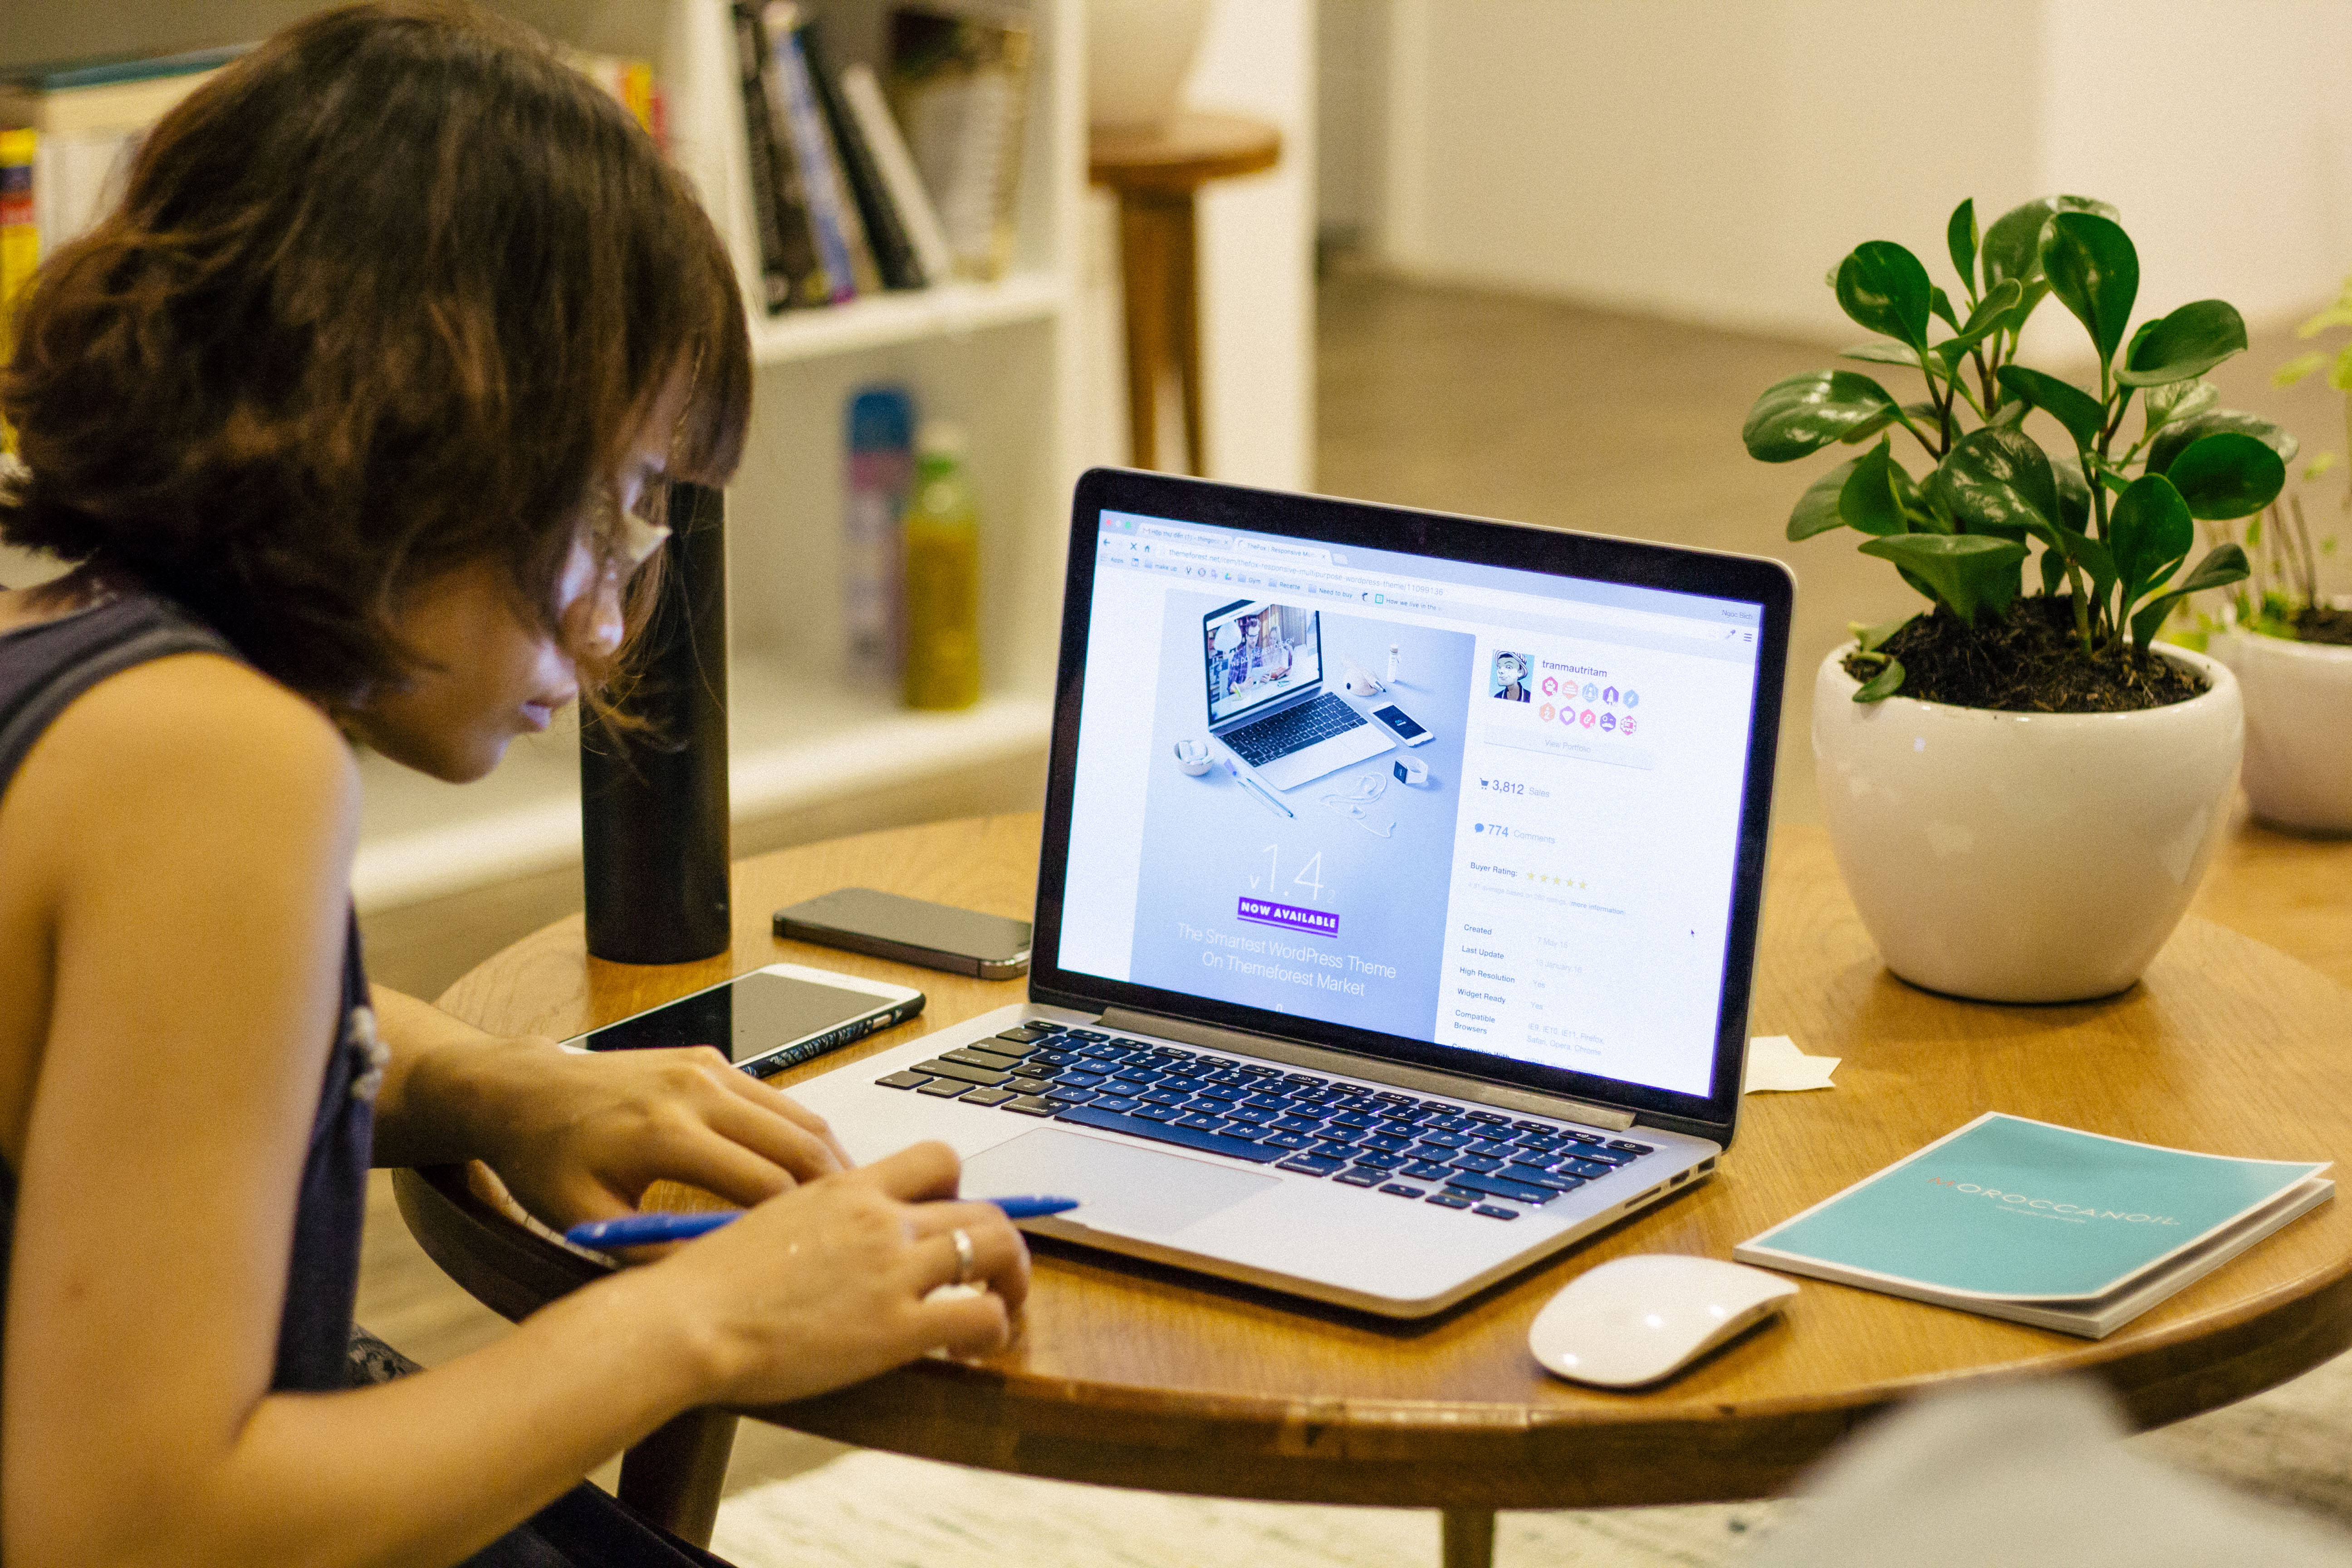 Five Elective Classes Any Illustrator Student should take